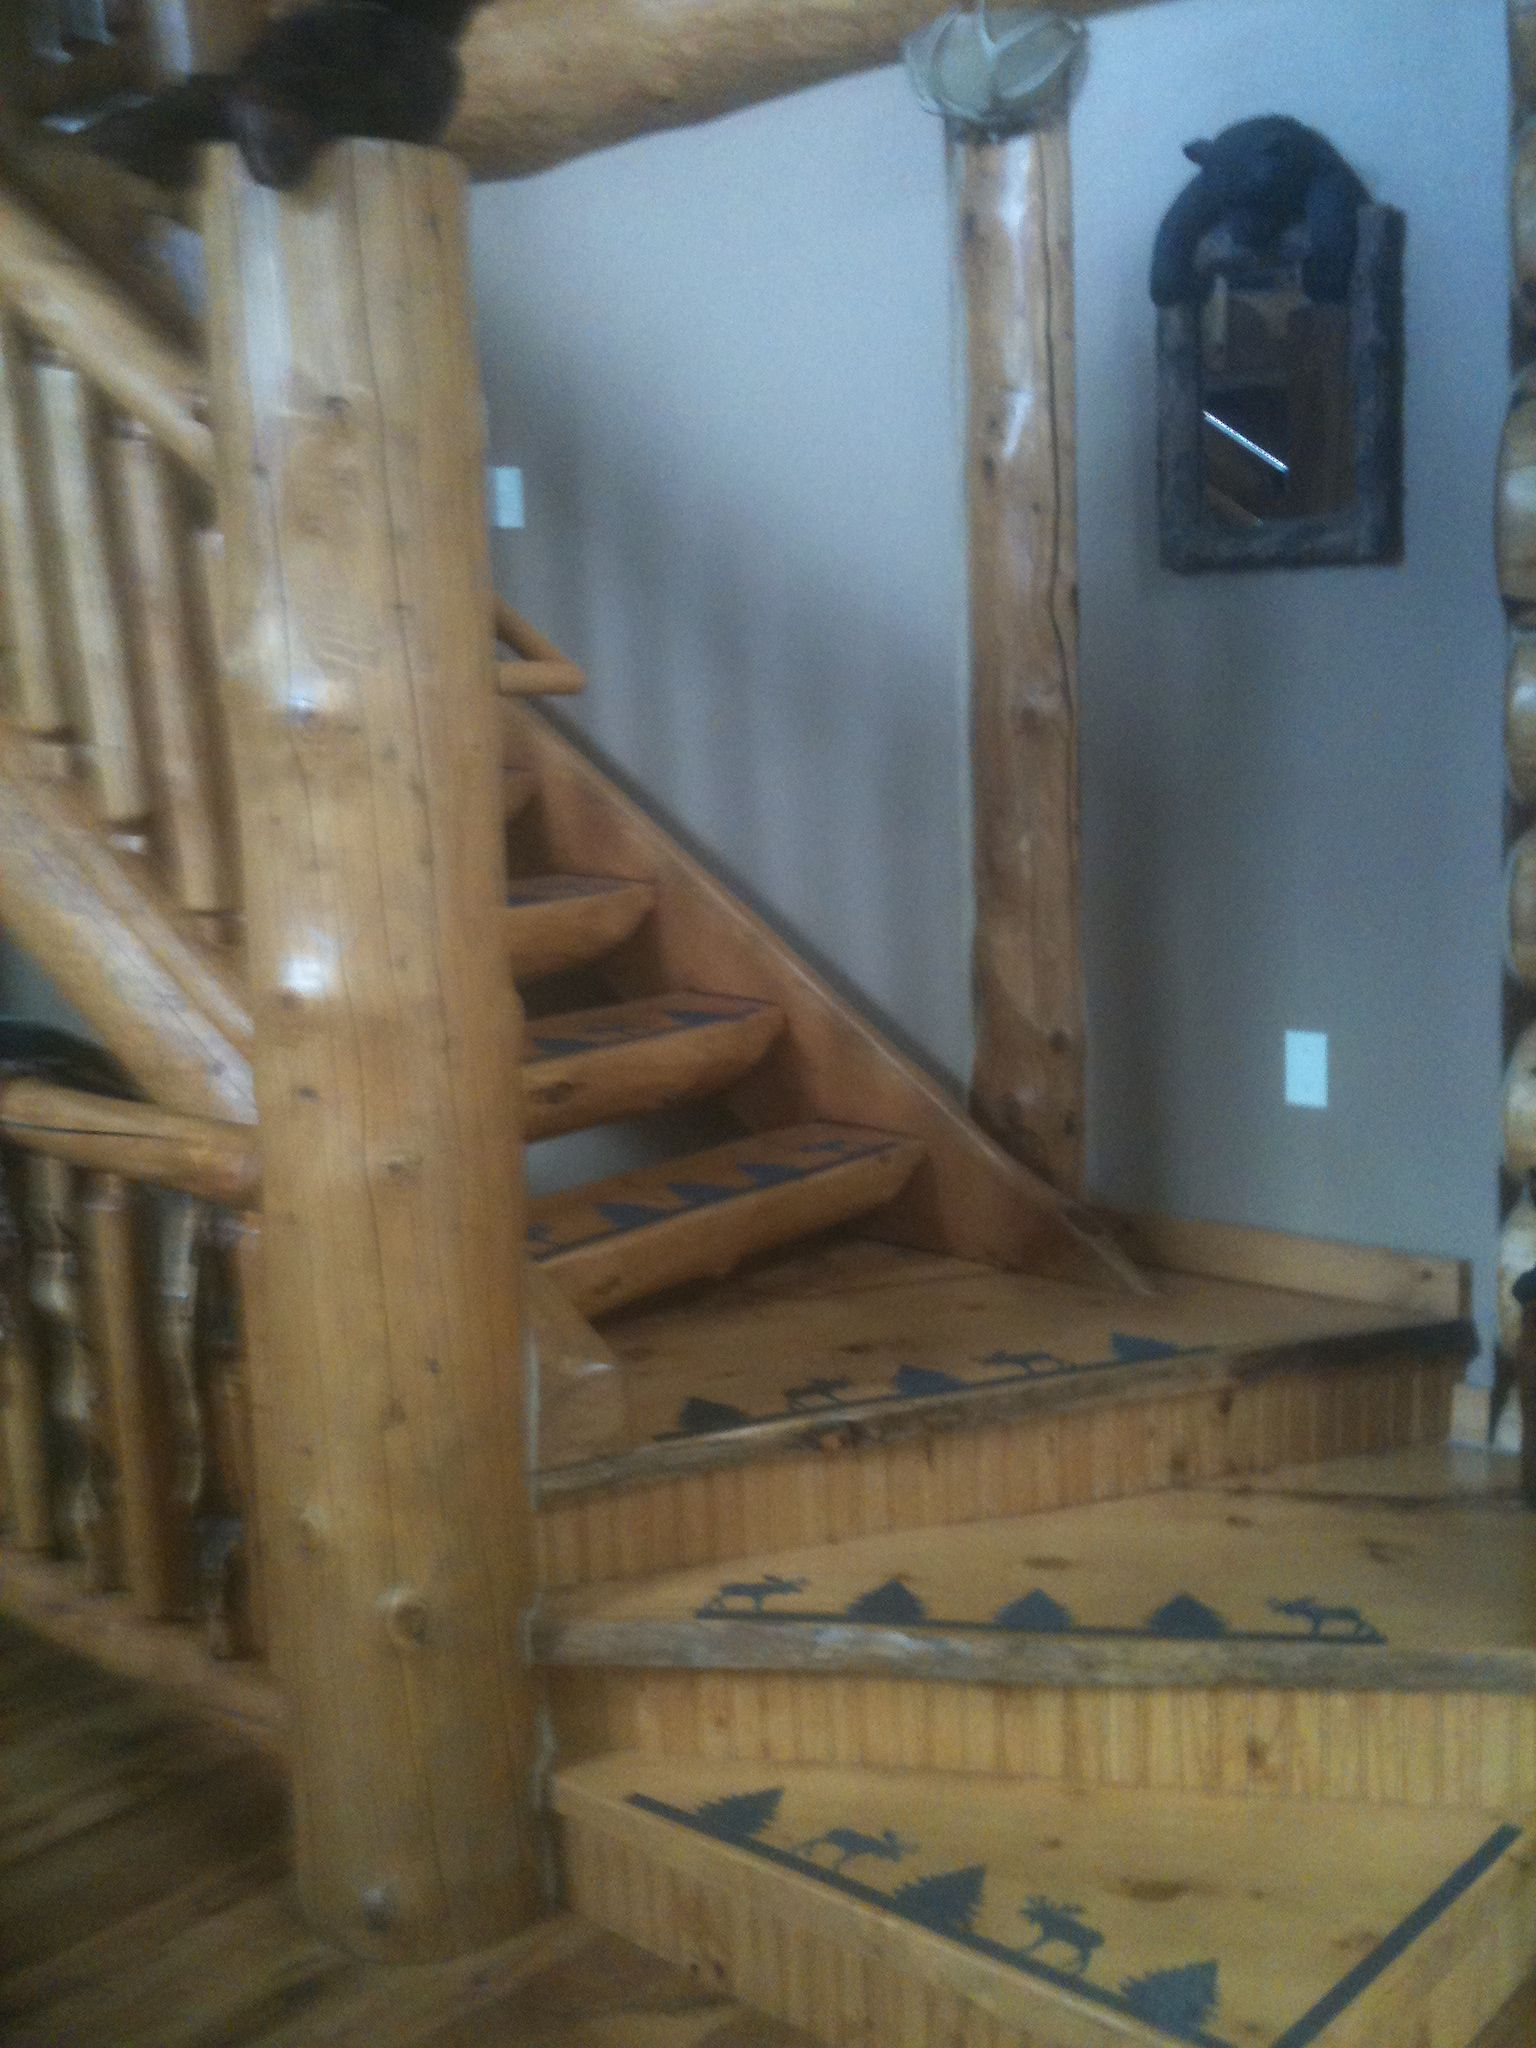 Log staircase at the cabin